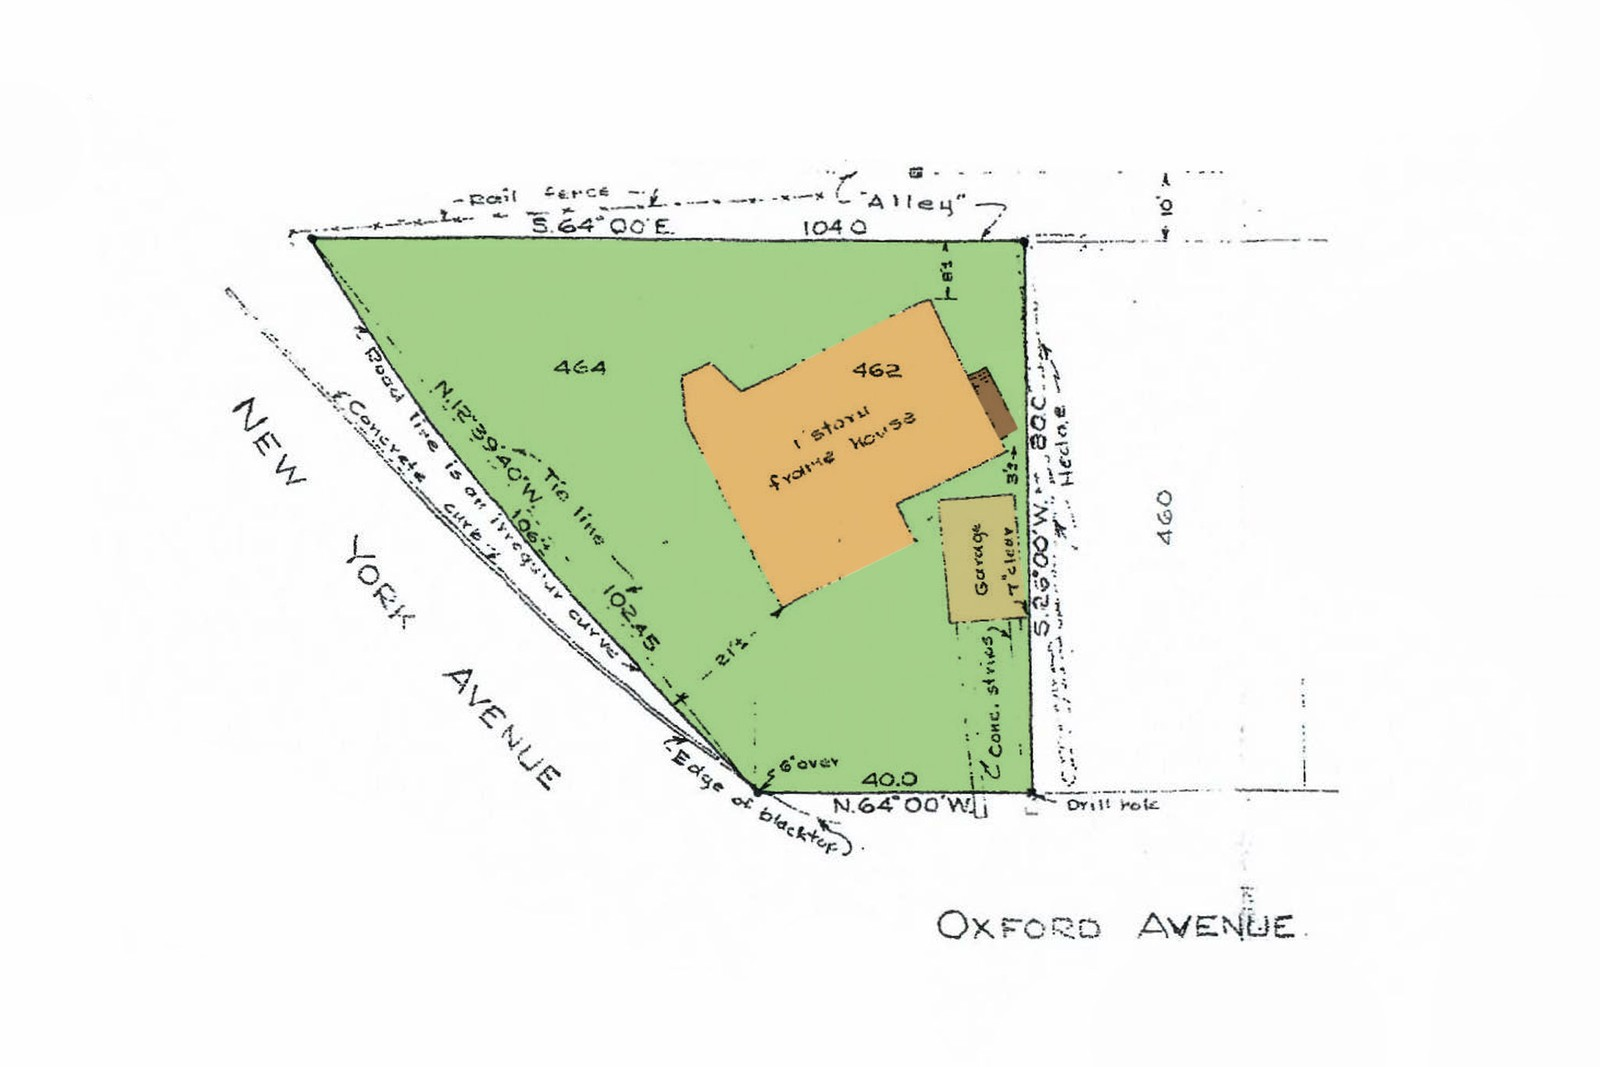 Single Family Homes for Sale at Shelter Island Heights Sweet Cottage 40 New York Avenue, Shelter Island Heights, NY 11964